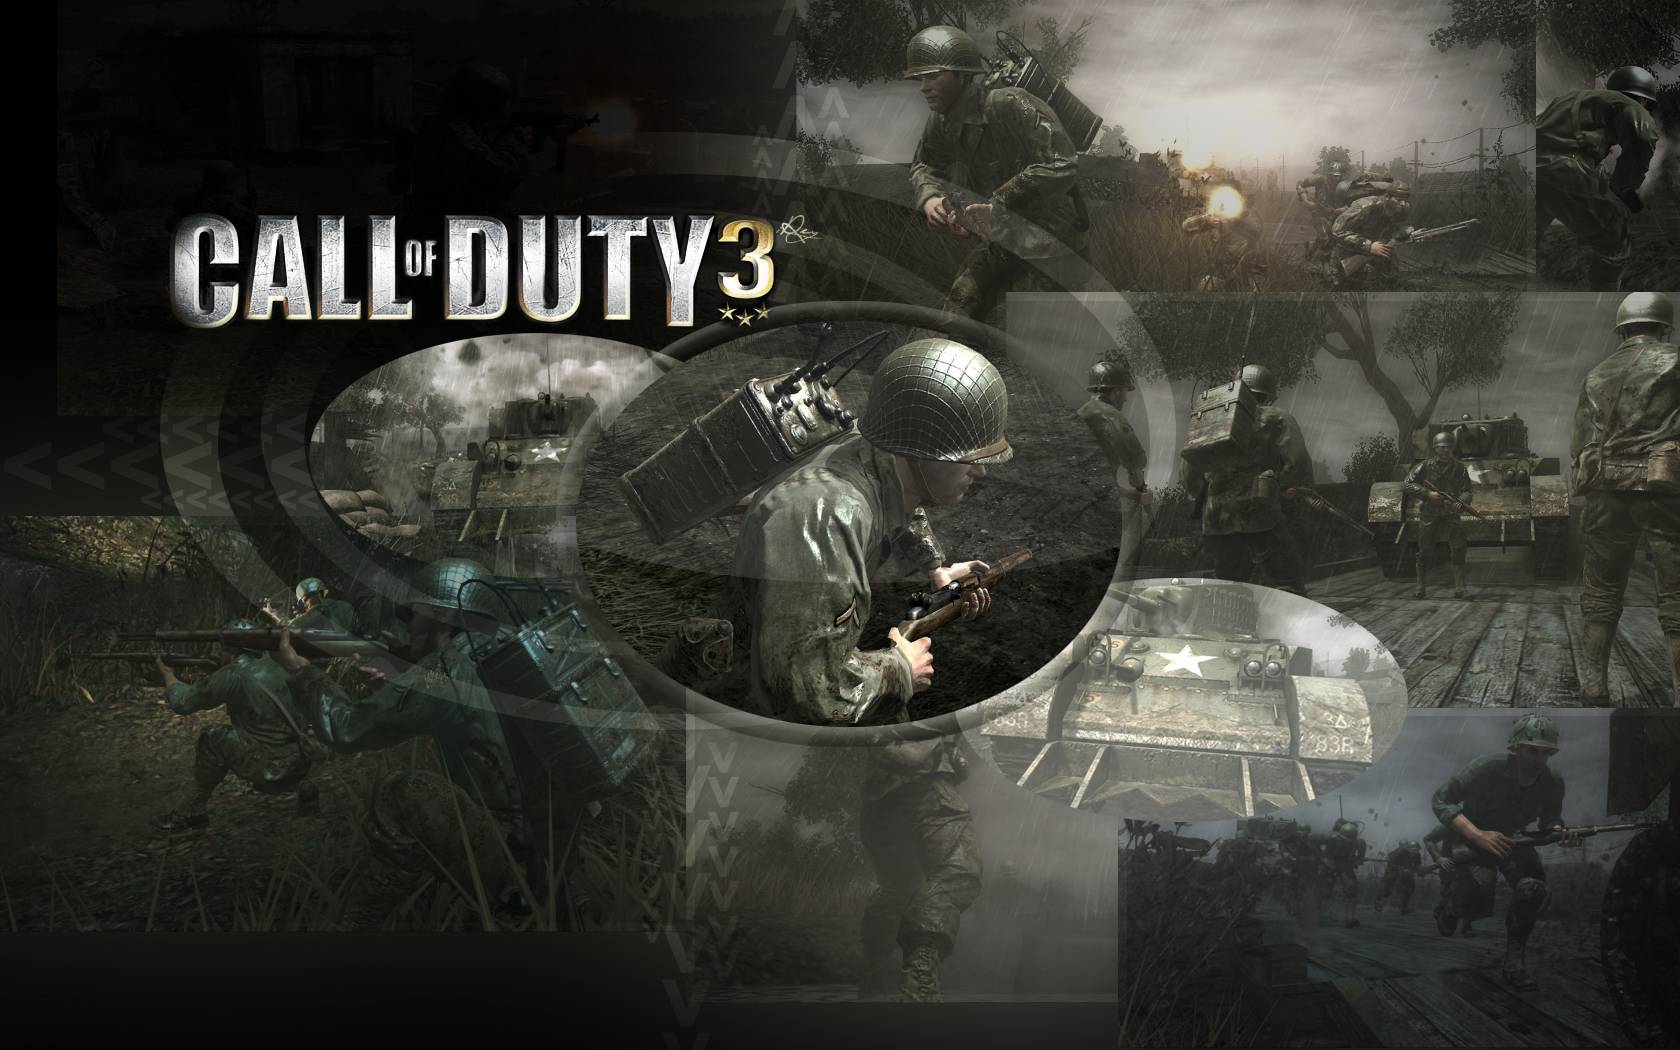 Wallpaper Call of Duty 3 - WallpaperSafari